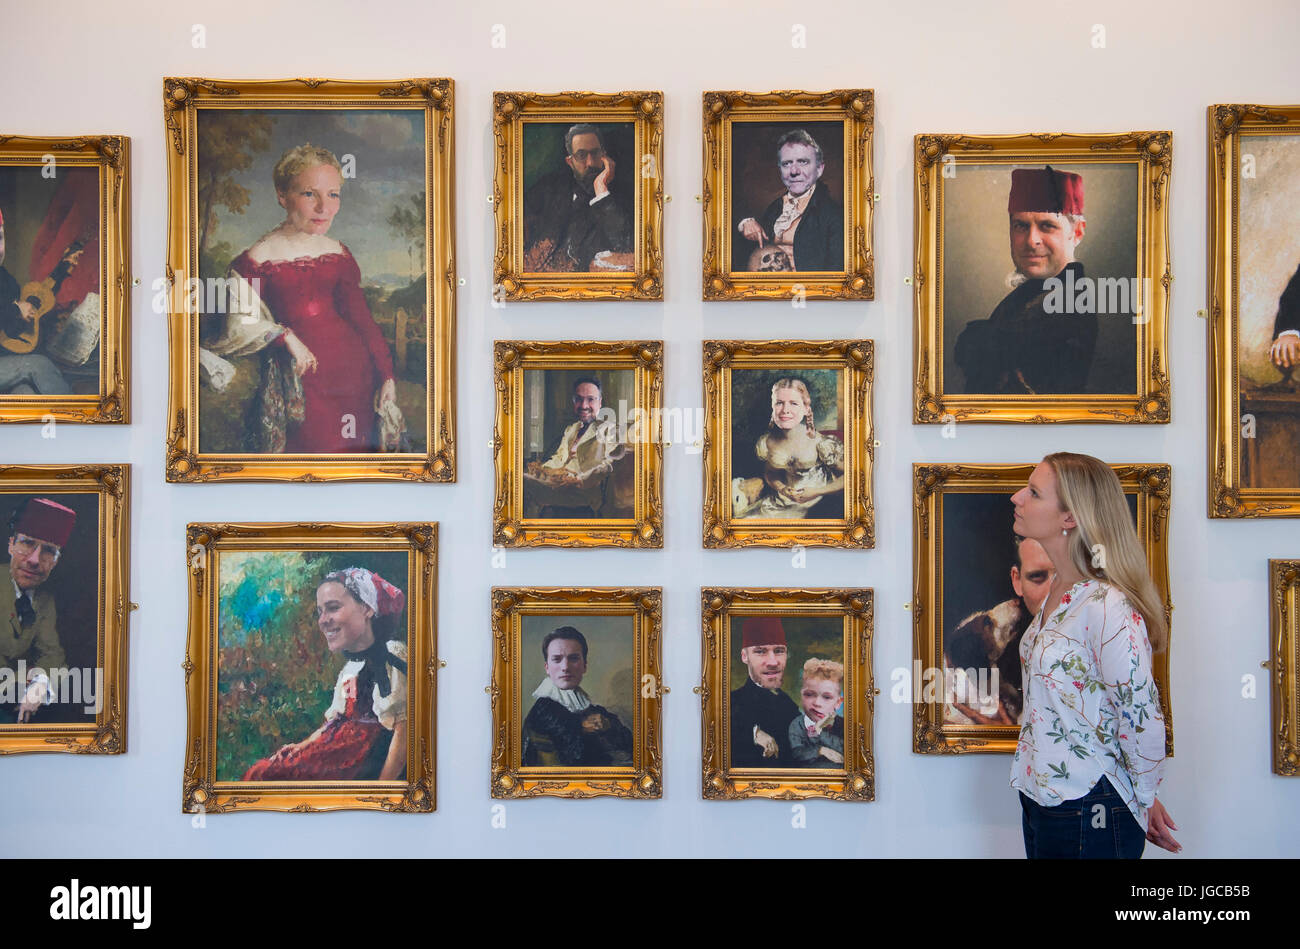 Somerset House, London, UK. 5th July 2017. Imagine a fictional society inspired by the real history of Somerset - Stock Image